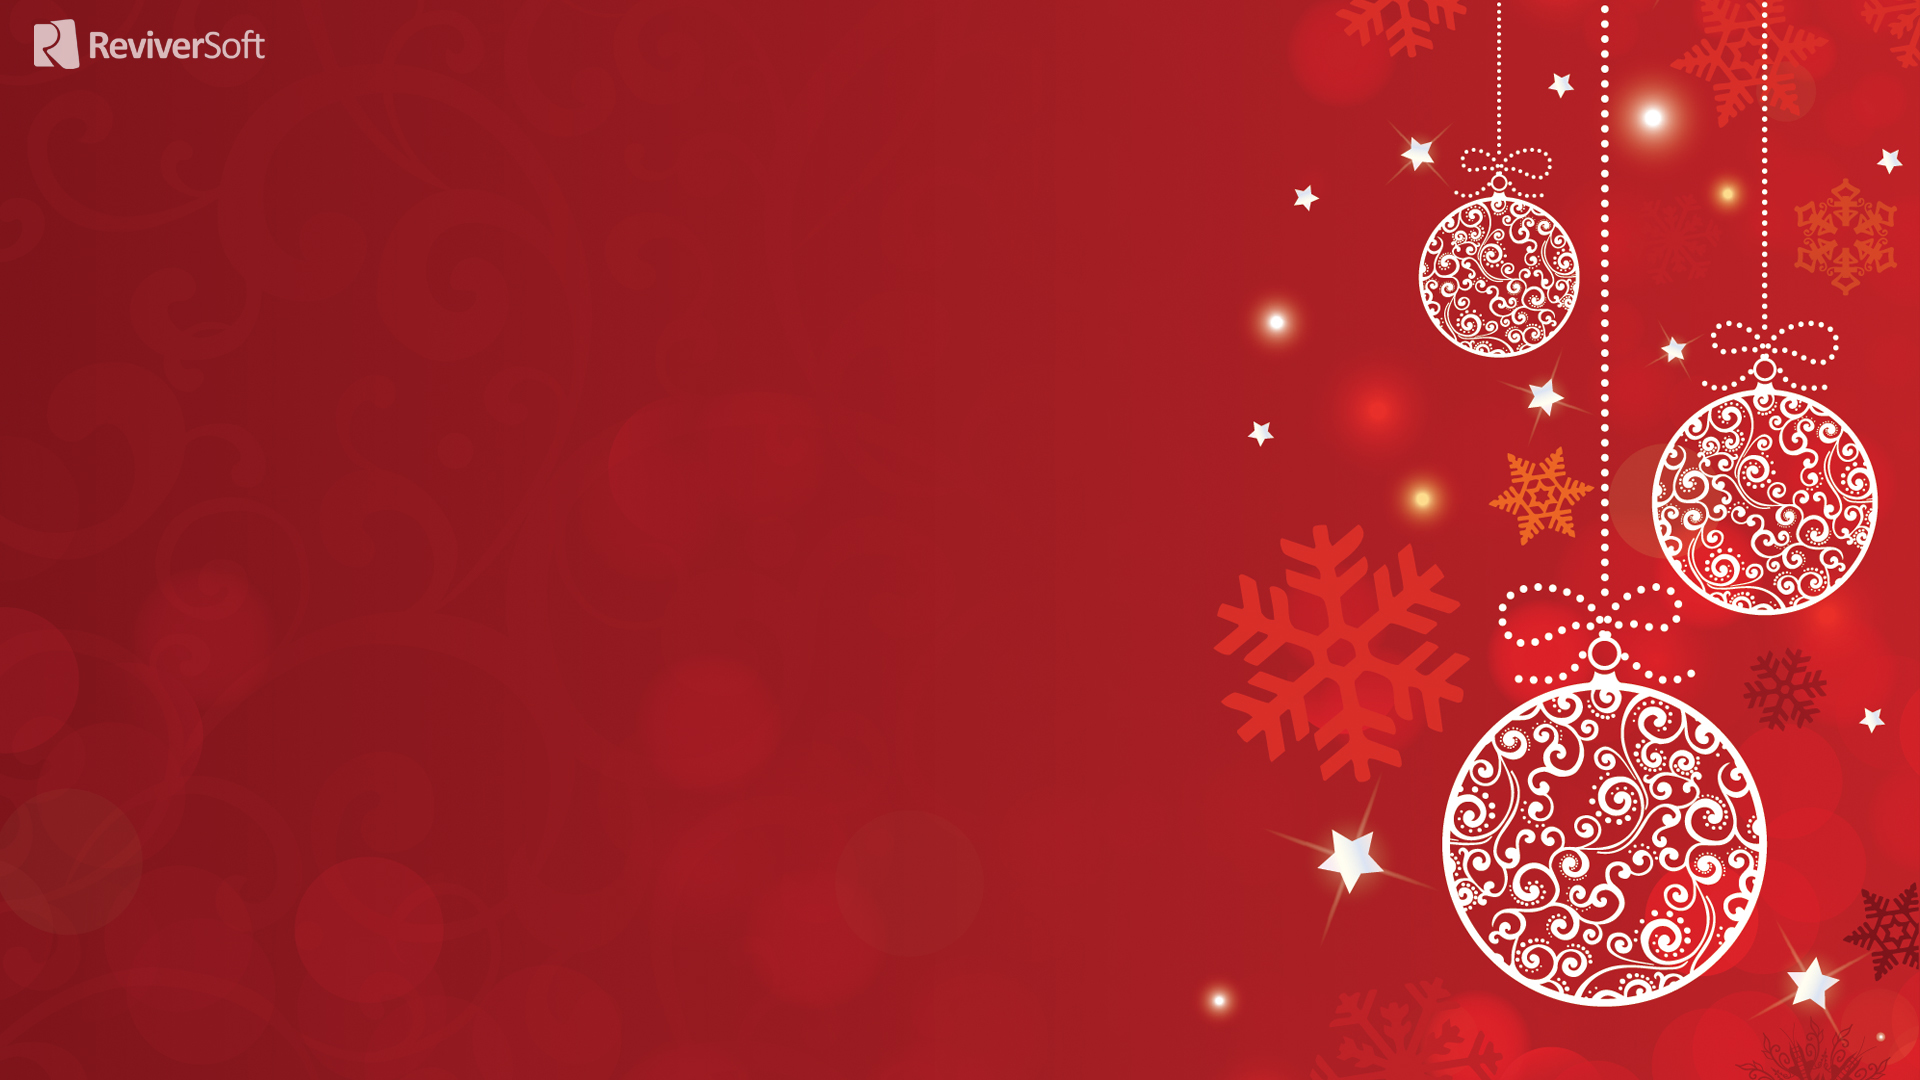 xmas backgrounds - wallpapersafari